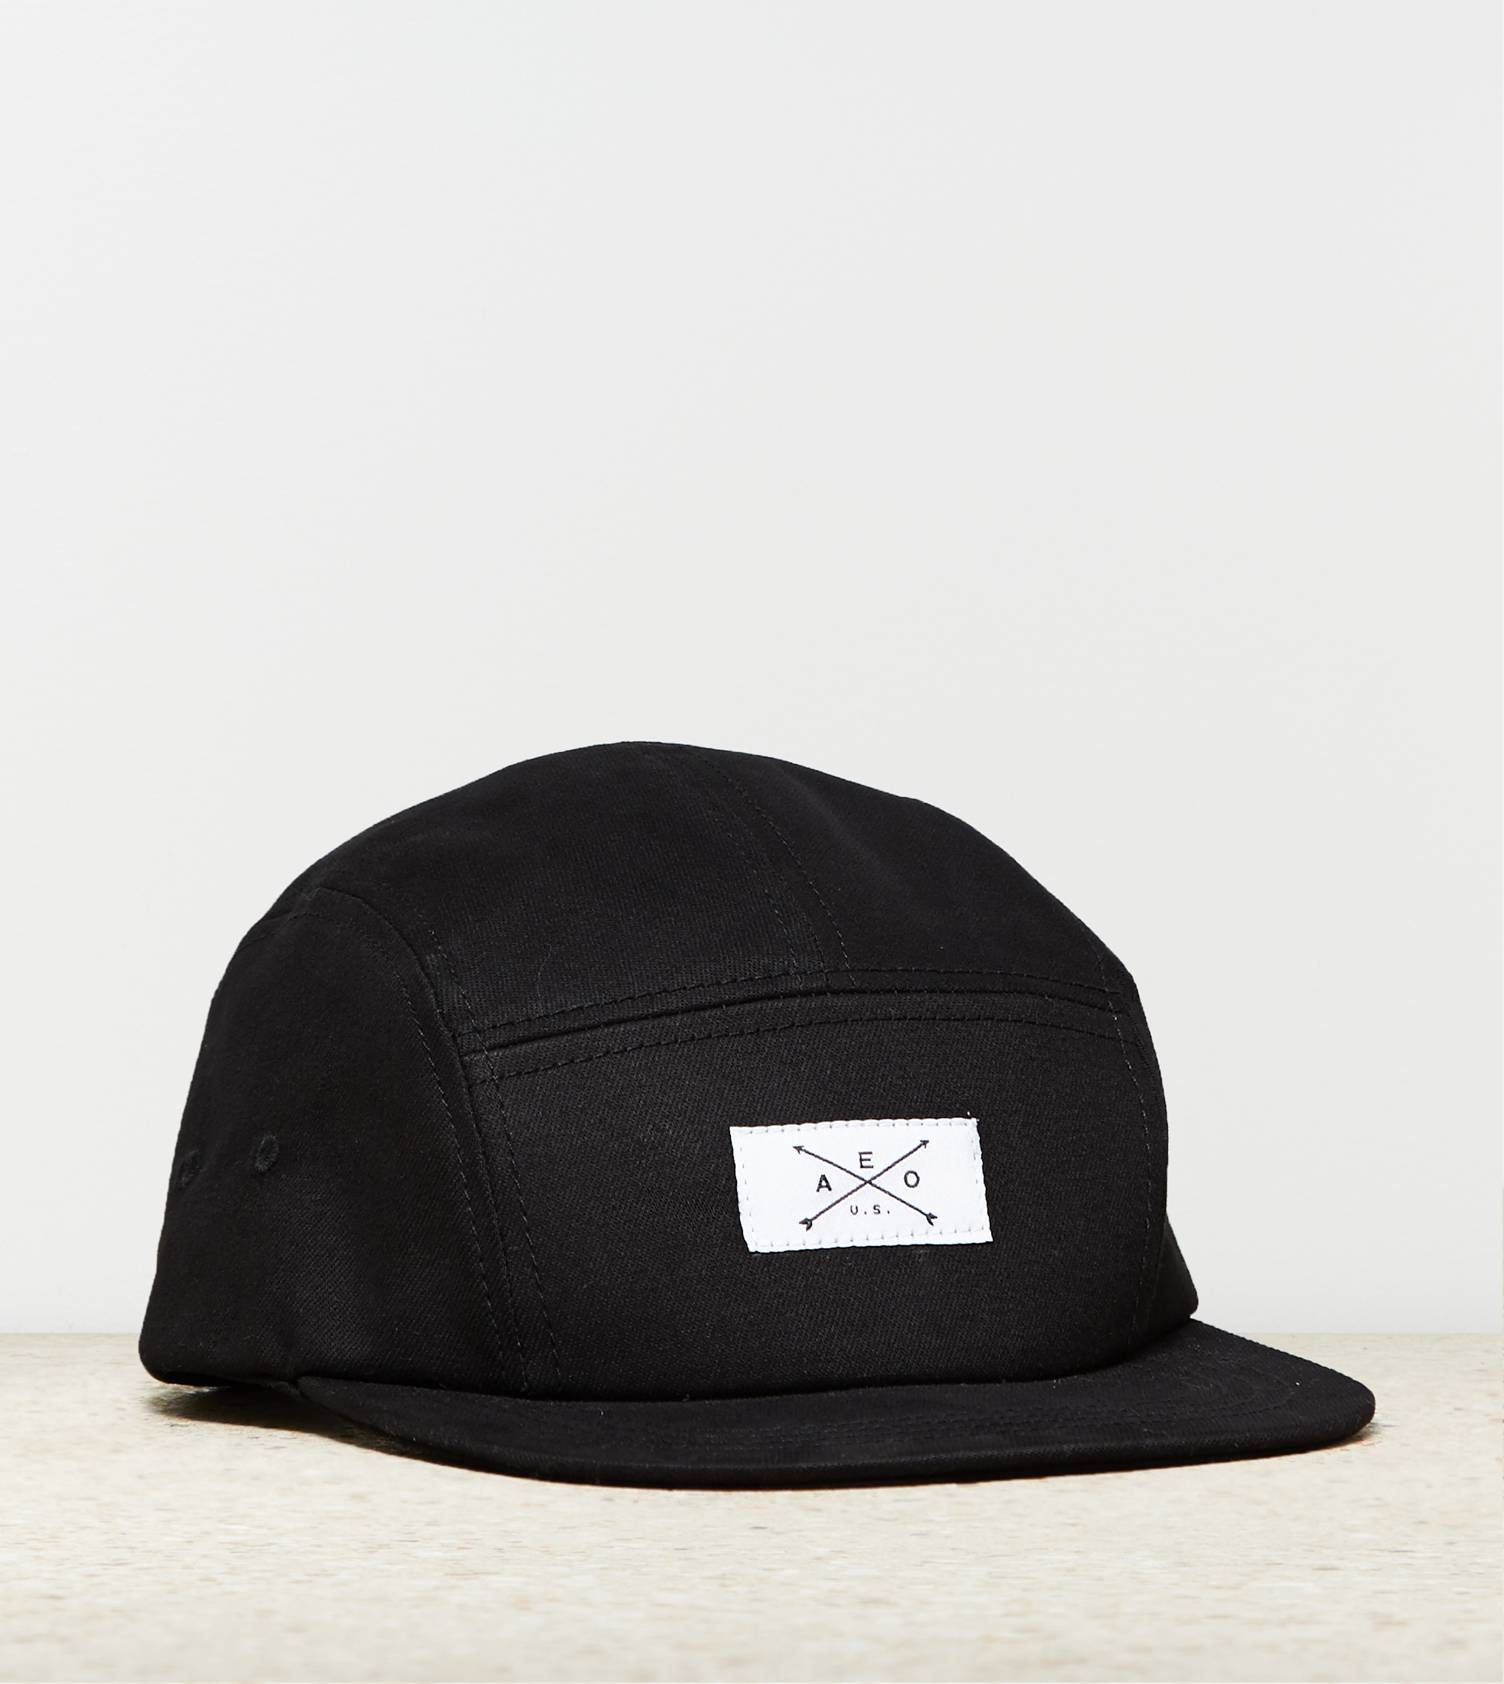 6445a85ba33 Solid 5-Panel Hat   absolutely lv!